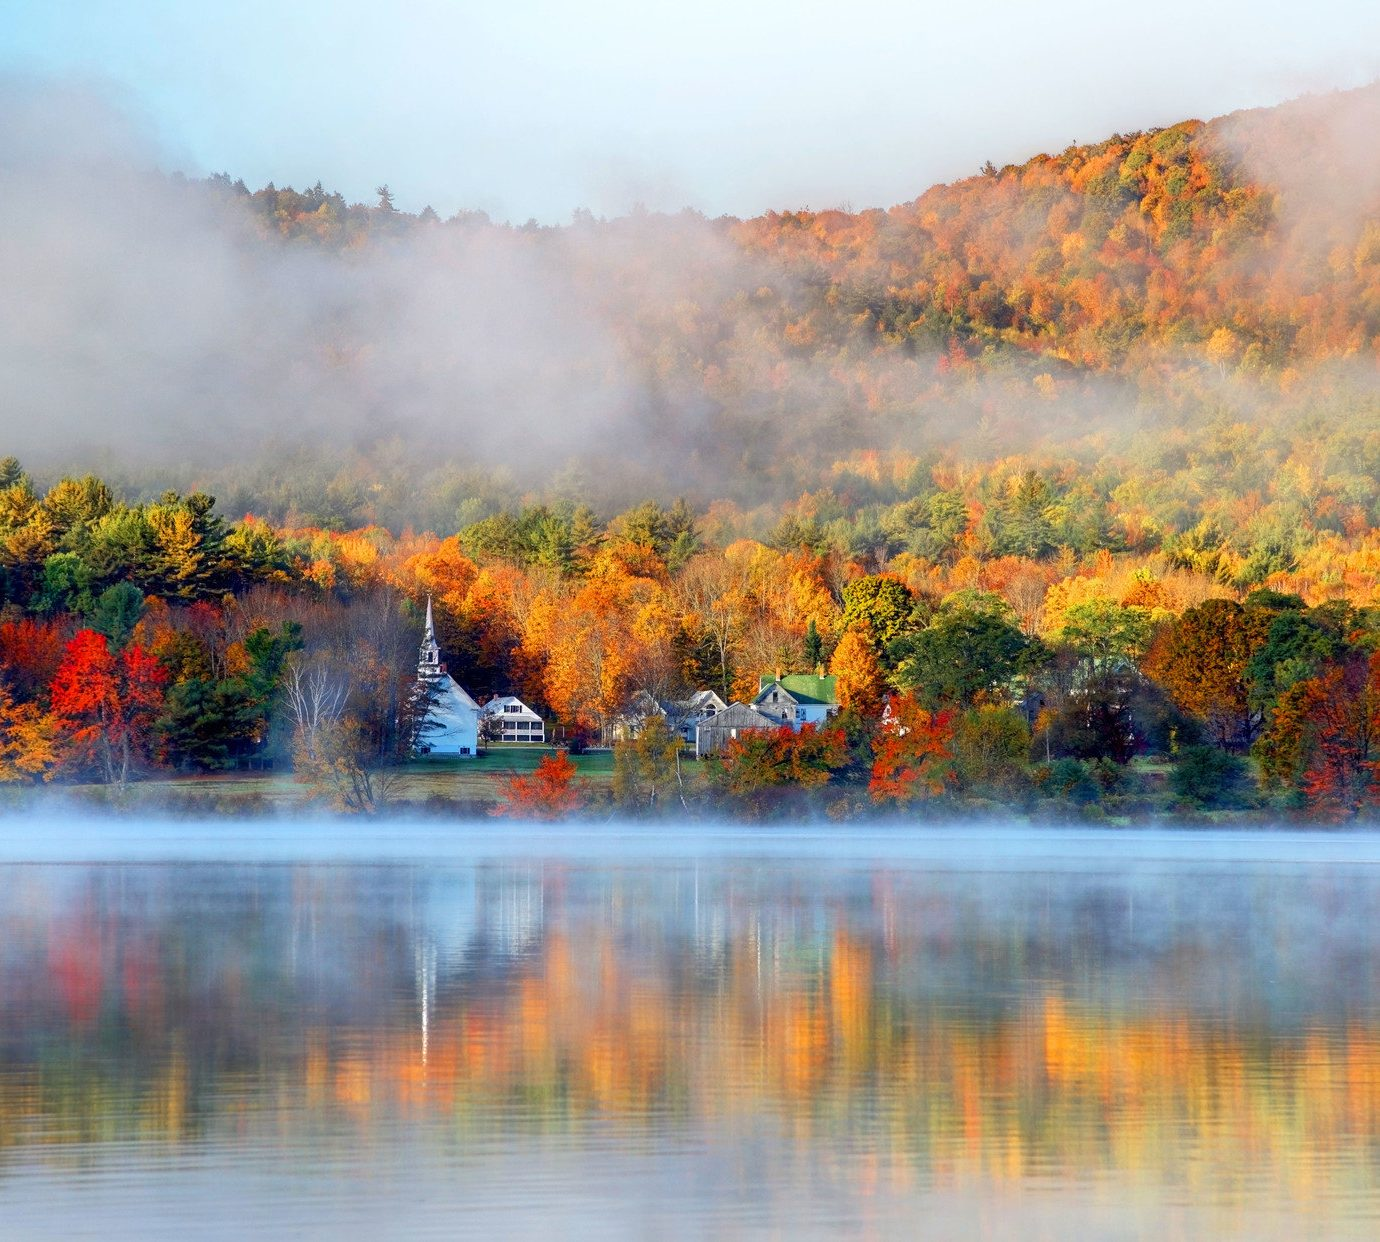 Hotels Road Trips Trip Ideas Nature water outdoor reflection pond atmospheric phenomenon tree wilderness autumn season leaf morning River Forest landscape Lake evening flower dawn sunrise mist